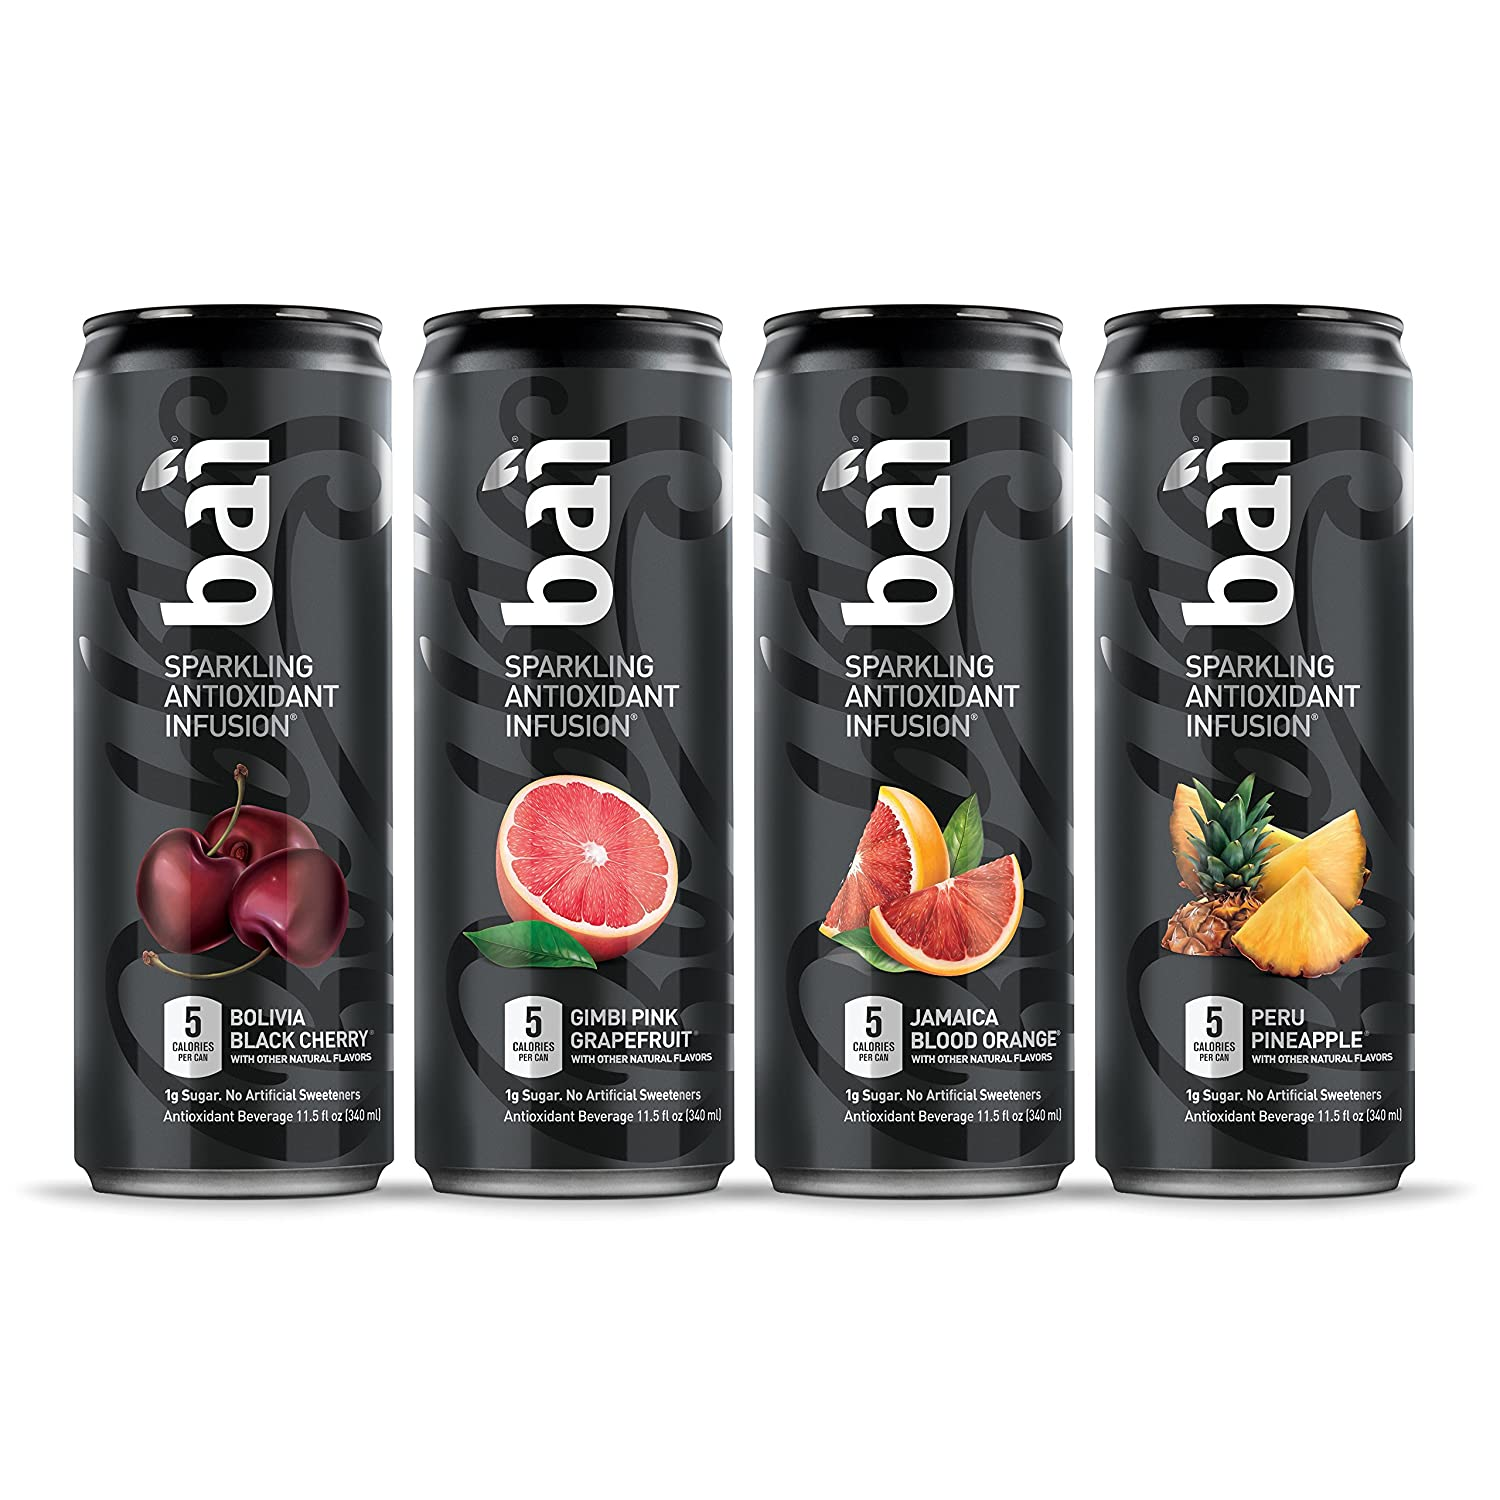 Bai Bubbles Variety Pack, Sparkling Antioxidant Infused Beverage